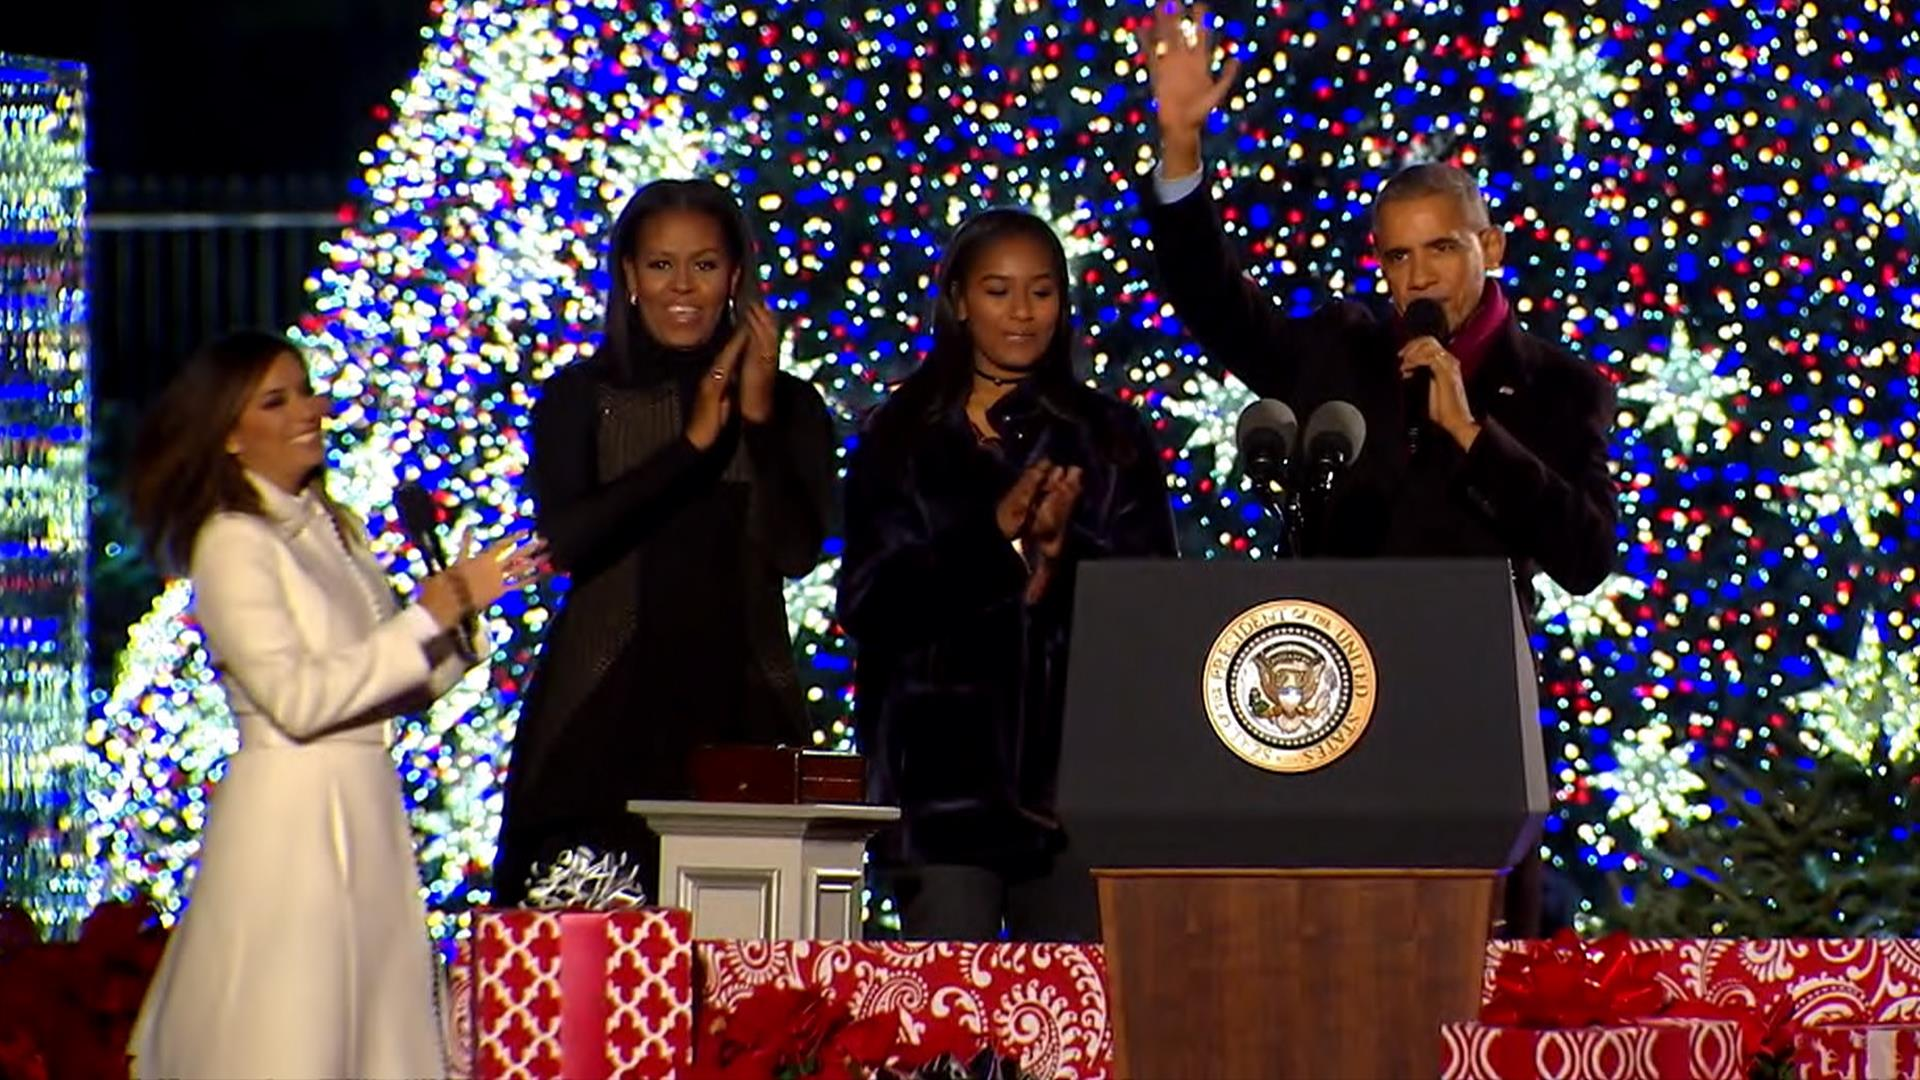 The Obamas Light National Christmas Tree for the Final Time